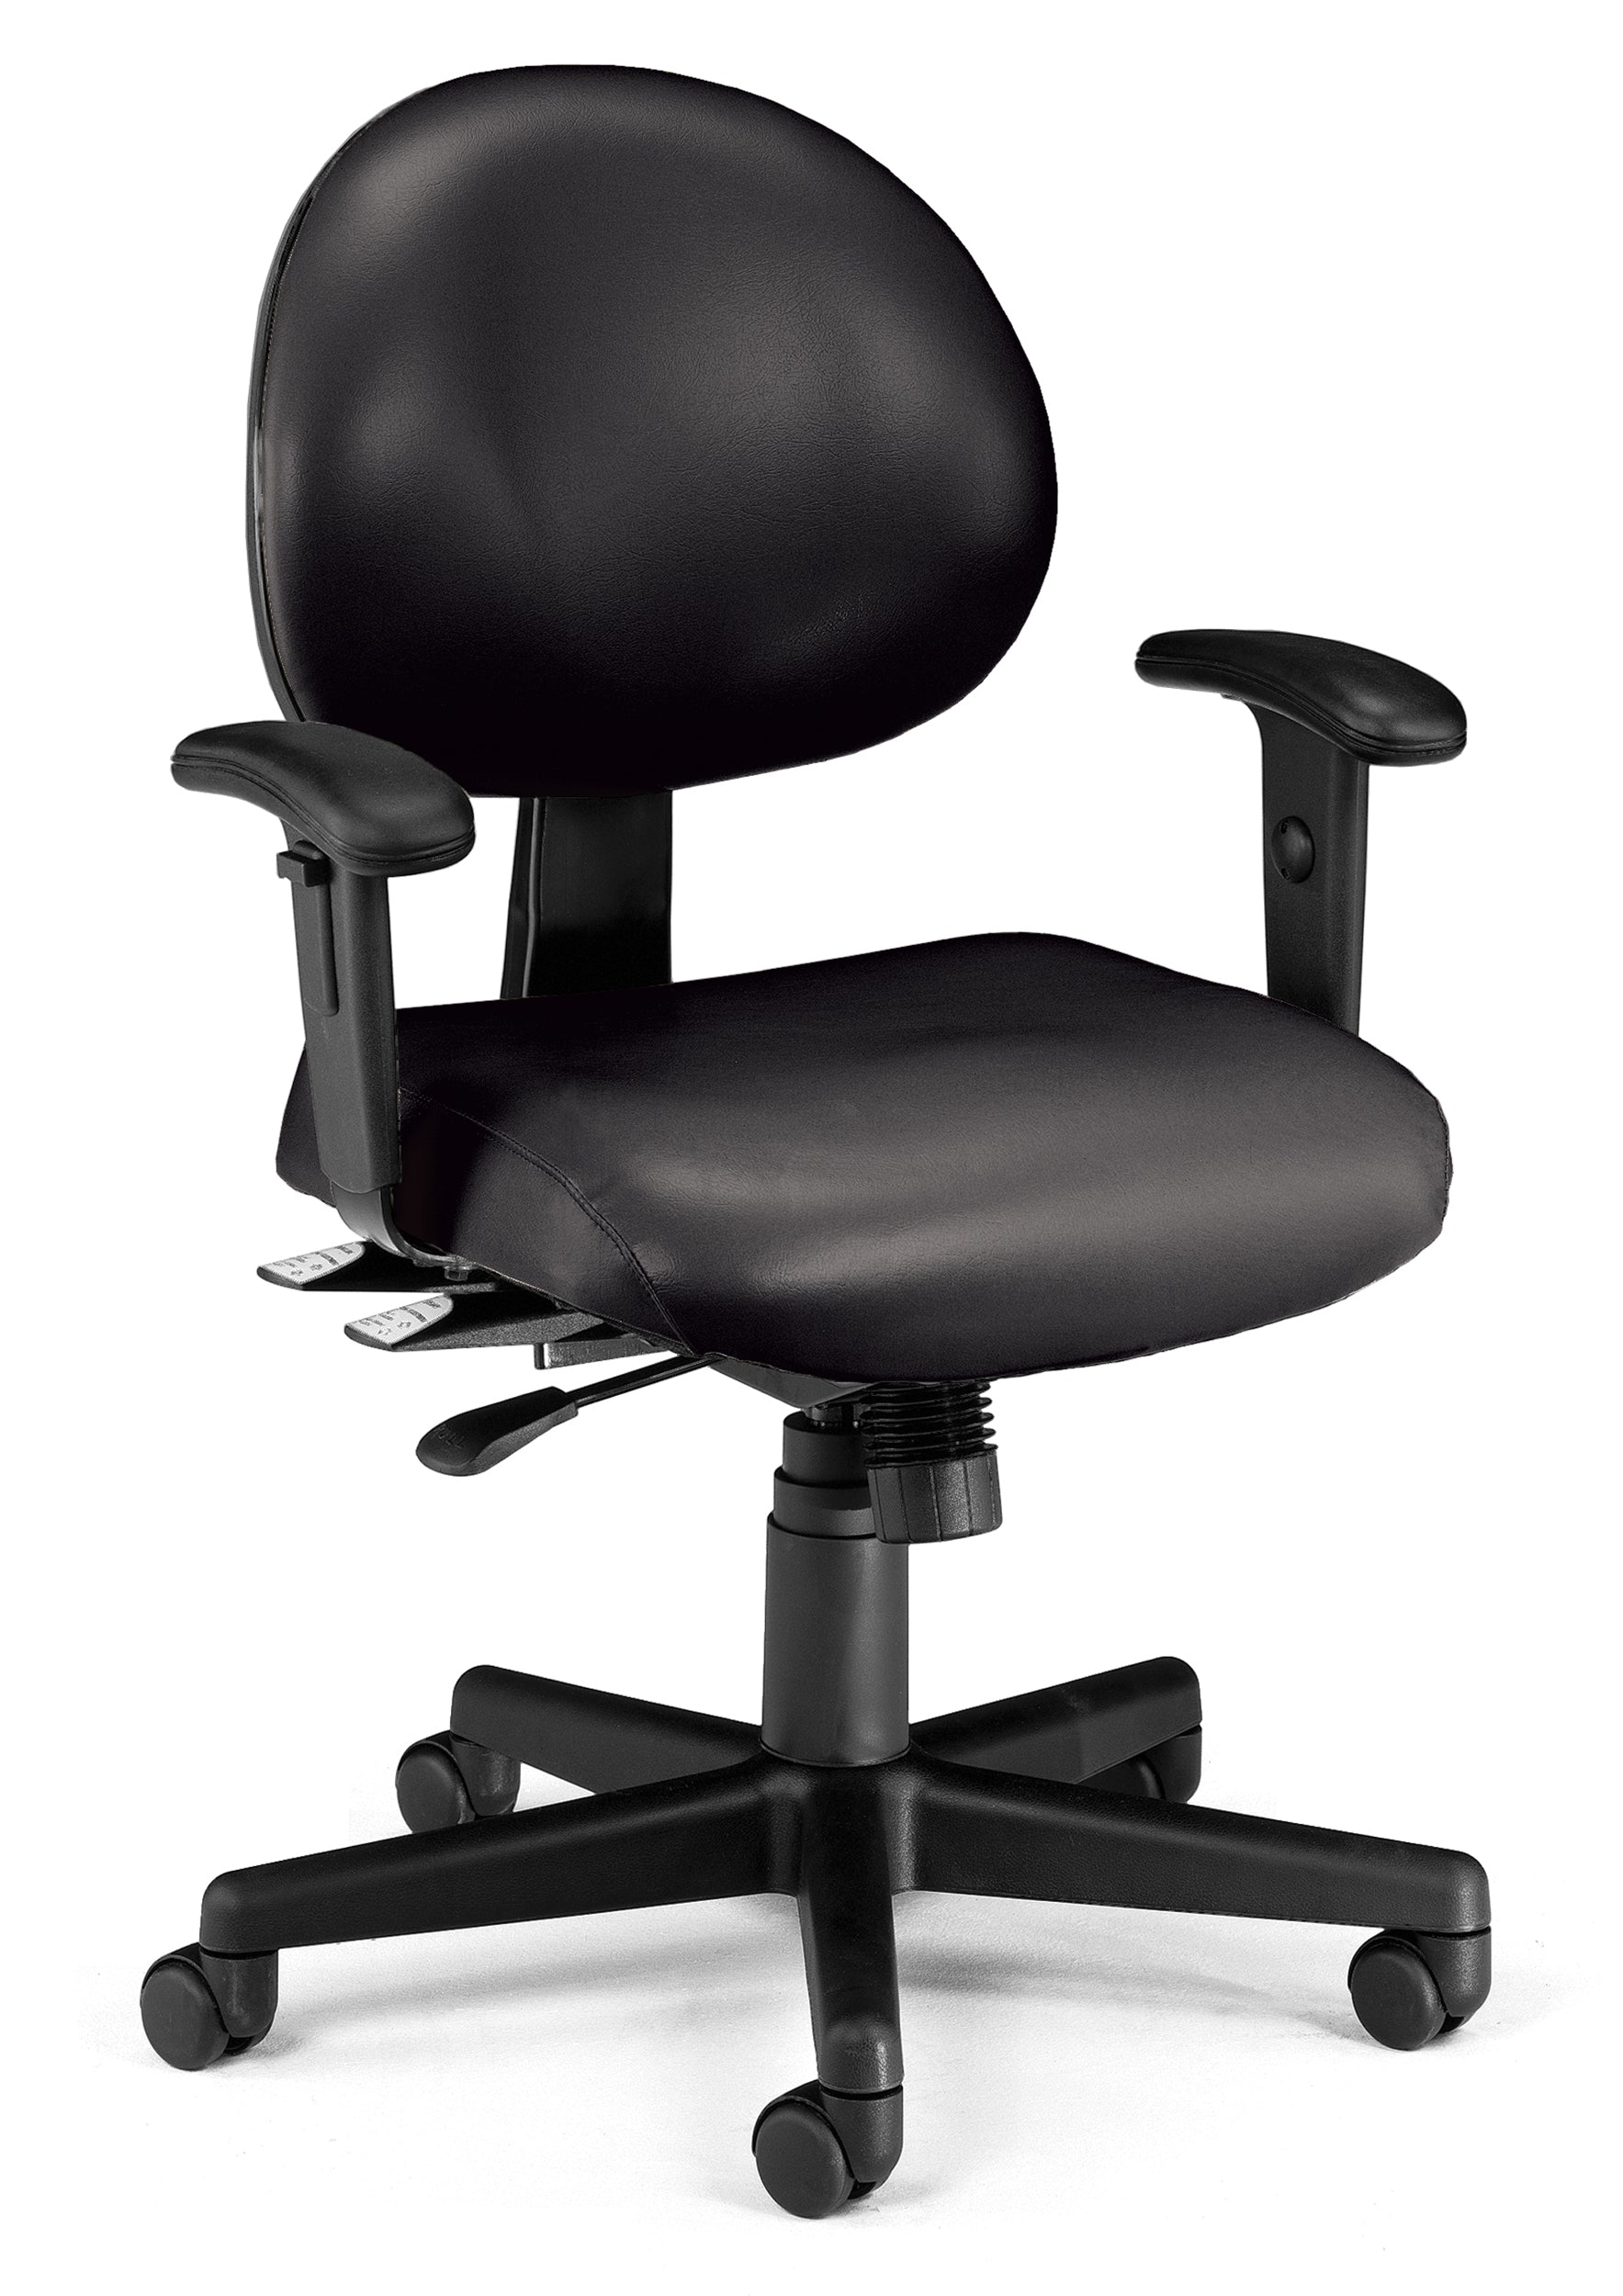 Ofminc Ergonomic Multi-Adjustable Vinyl Task Arms Chair